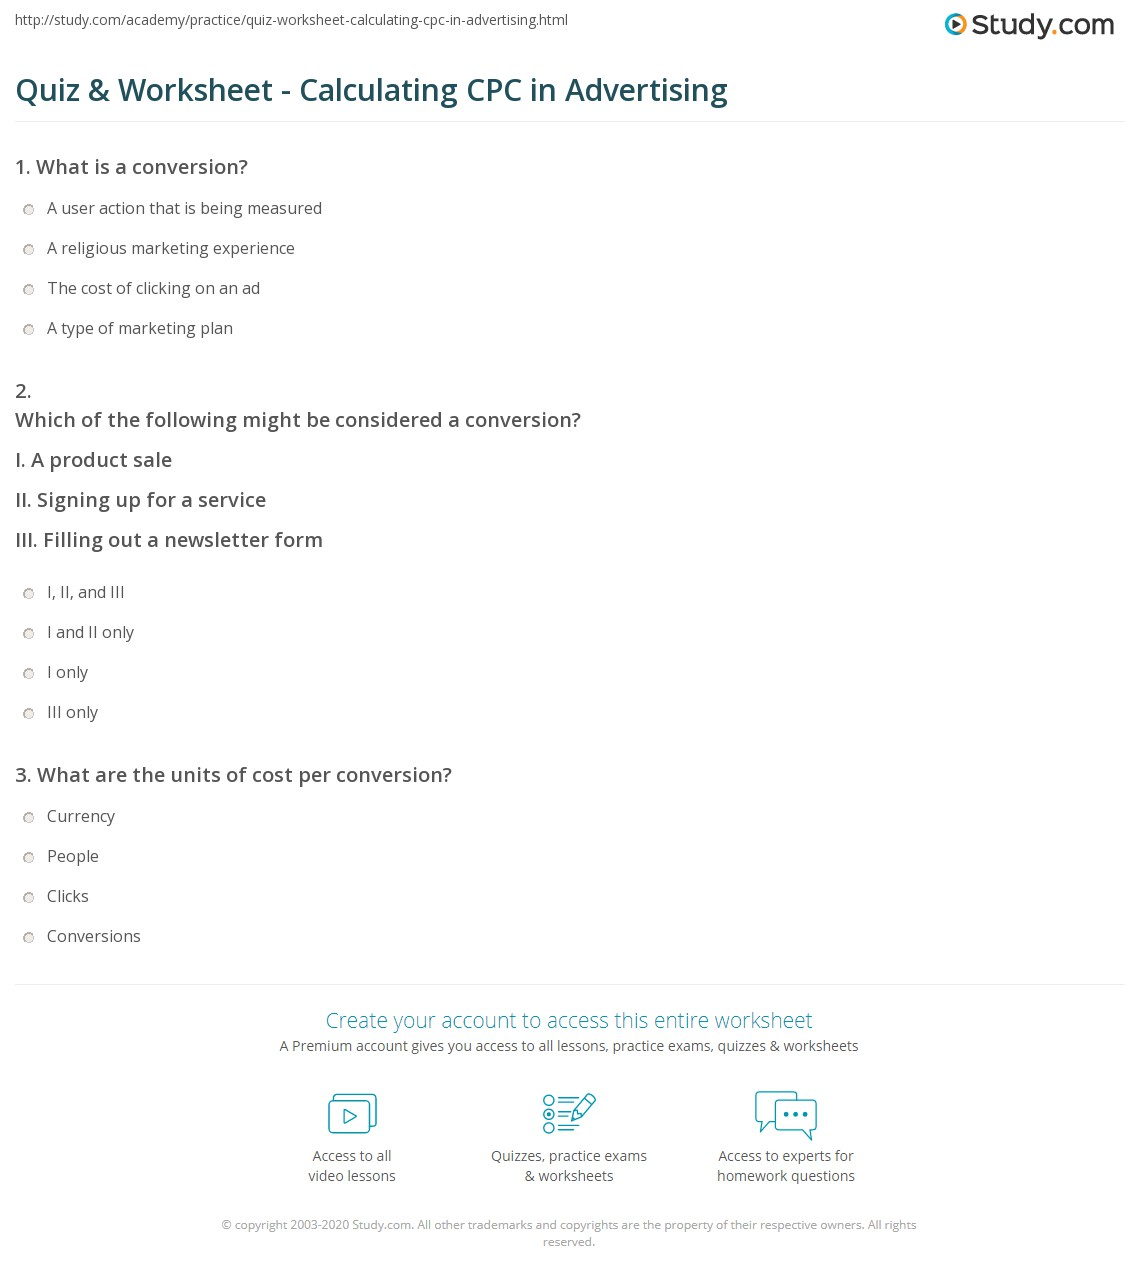 Quiz & Worksheet - Calculating CPC in Advertising | Study com